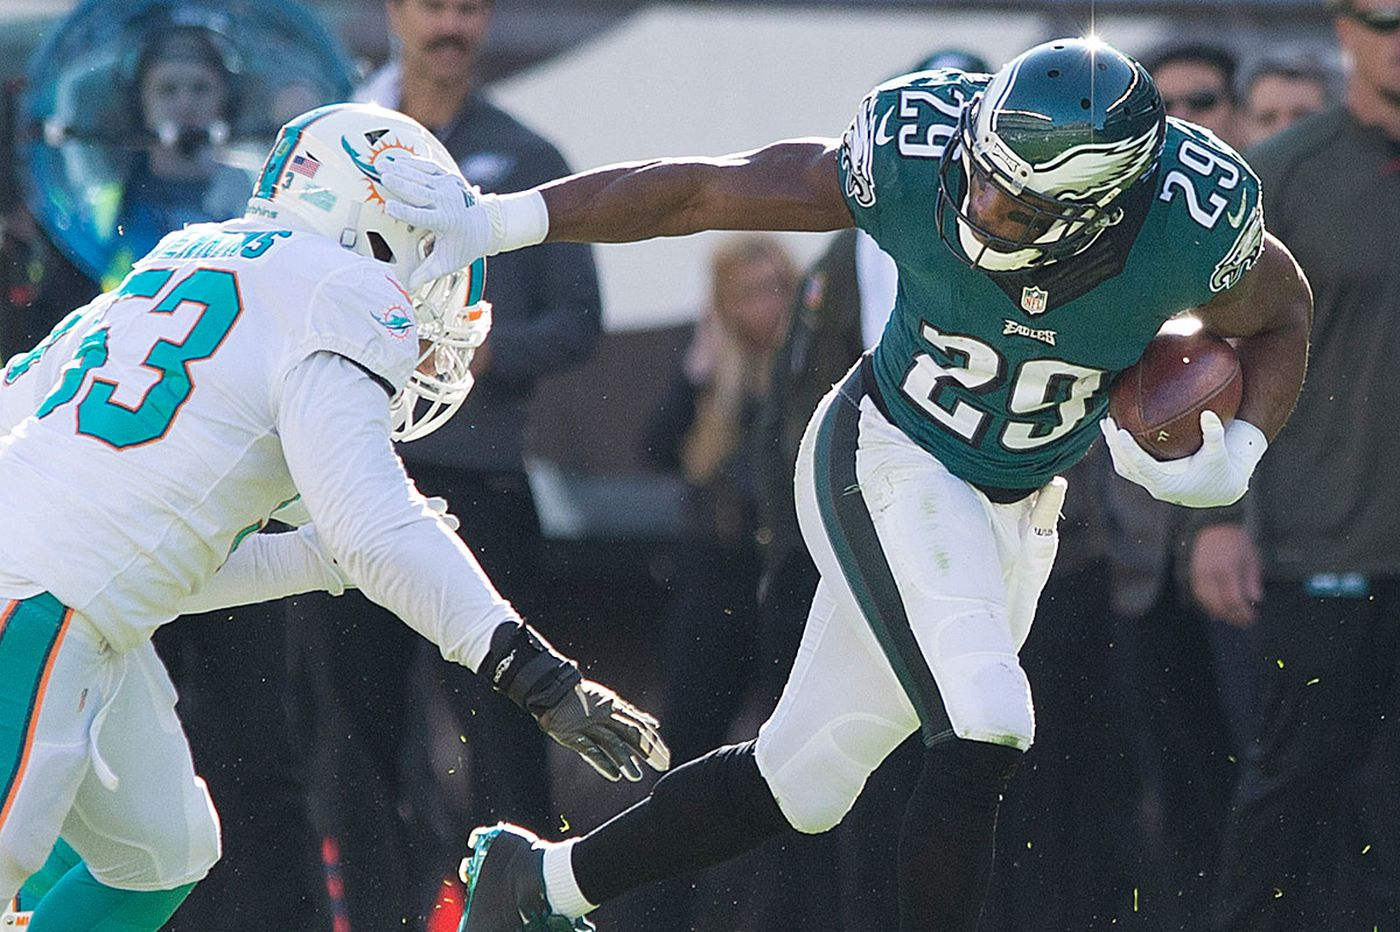 DeMarco Murray dodges questions on his slide